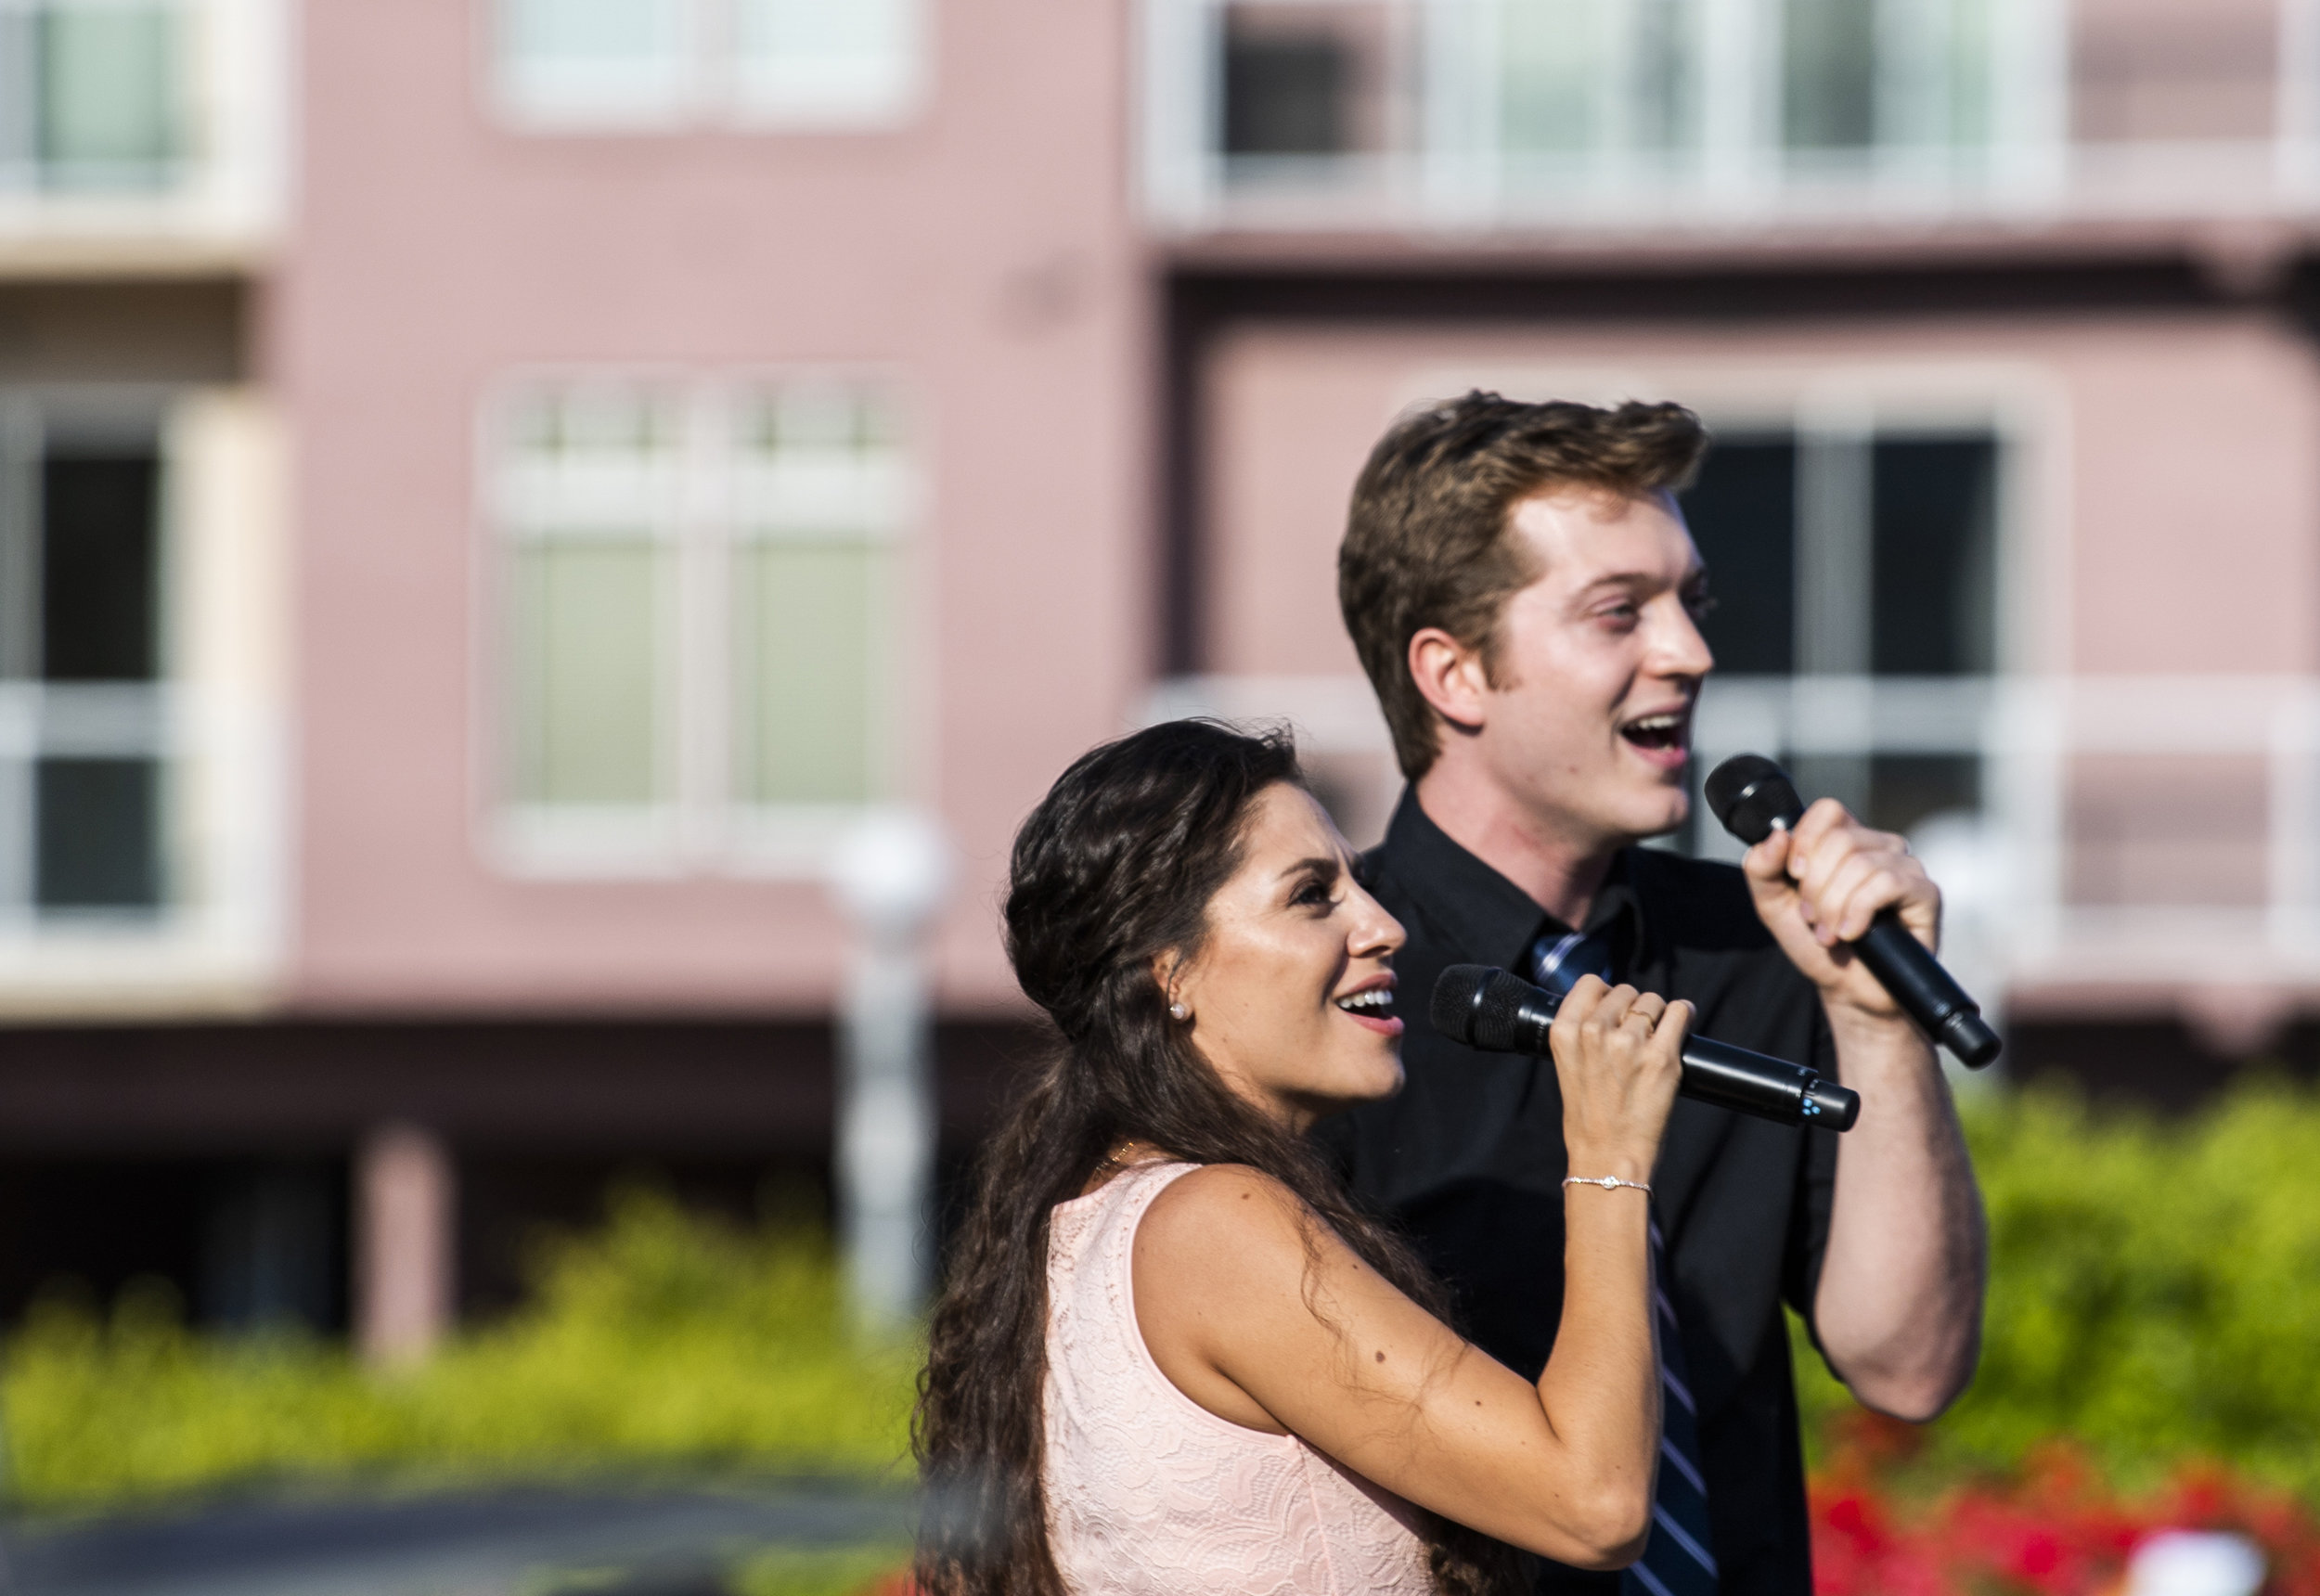 Amy Olivo and Adam Strand performers from Musical Theater West sing before the Long Beach mayor, other city leaders are sworn into new terms at the inauguration ceremony in Long Beach July 17, 2018.